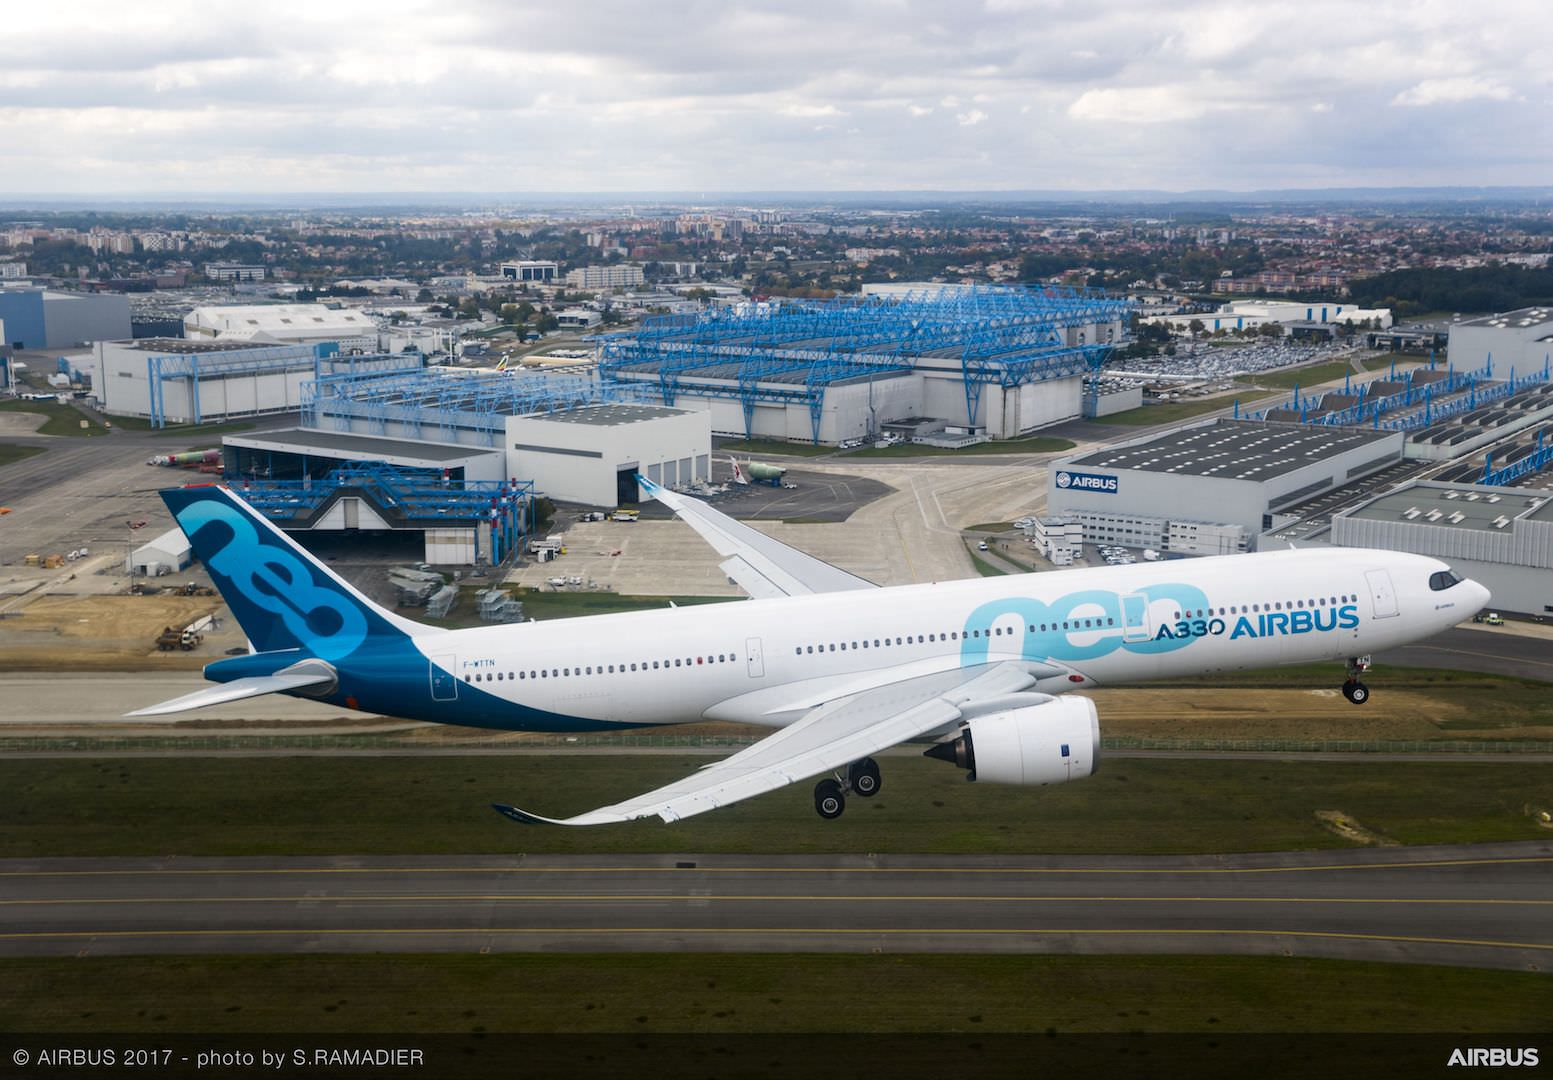 Airbus a330 photo gallery The best Airbus A330-300 Photos t